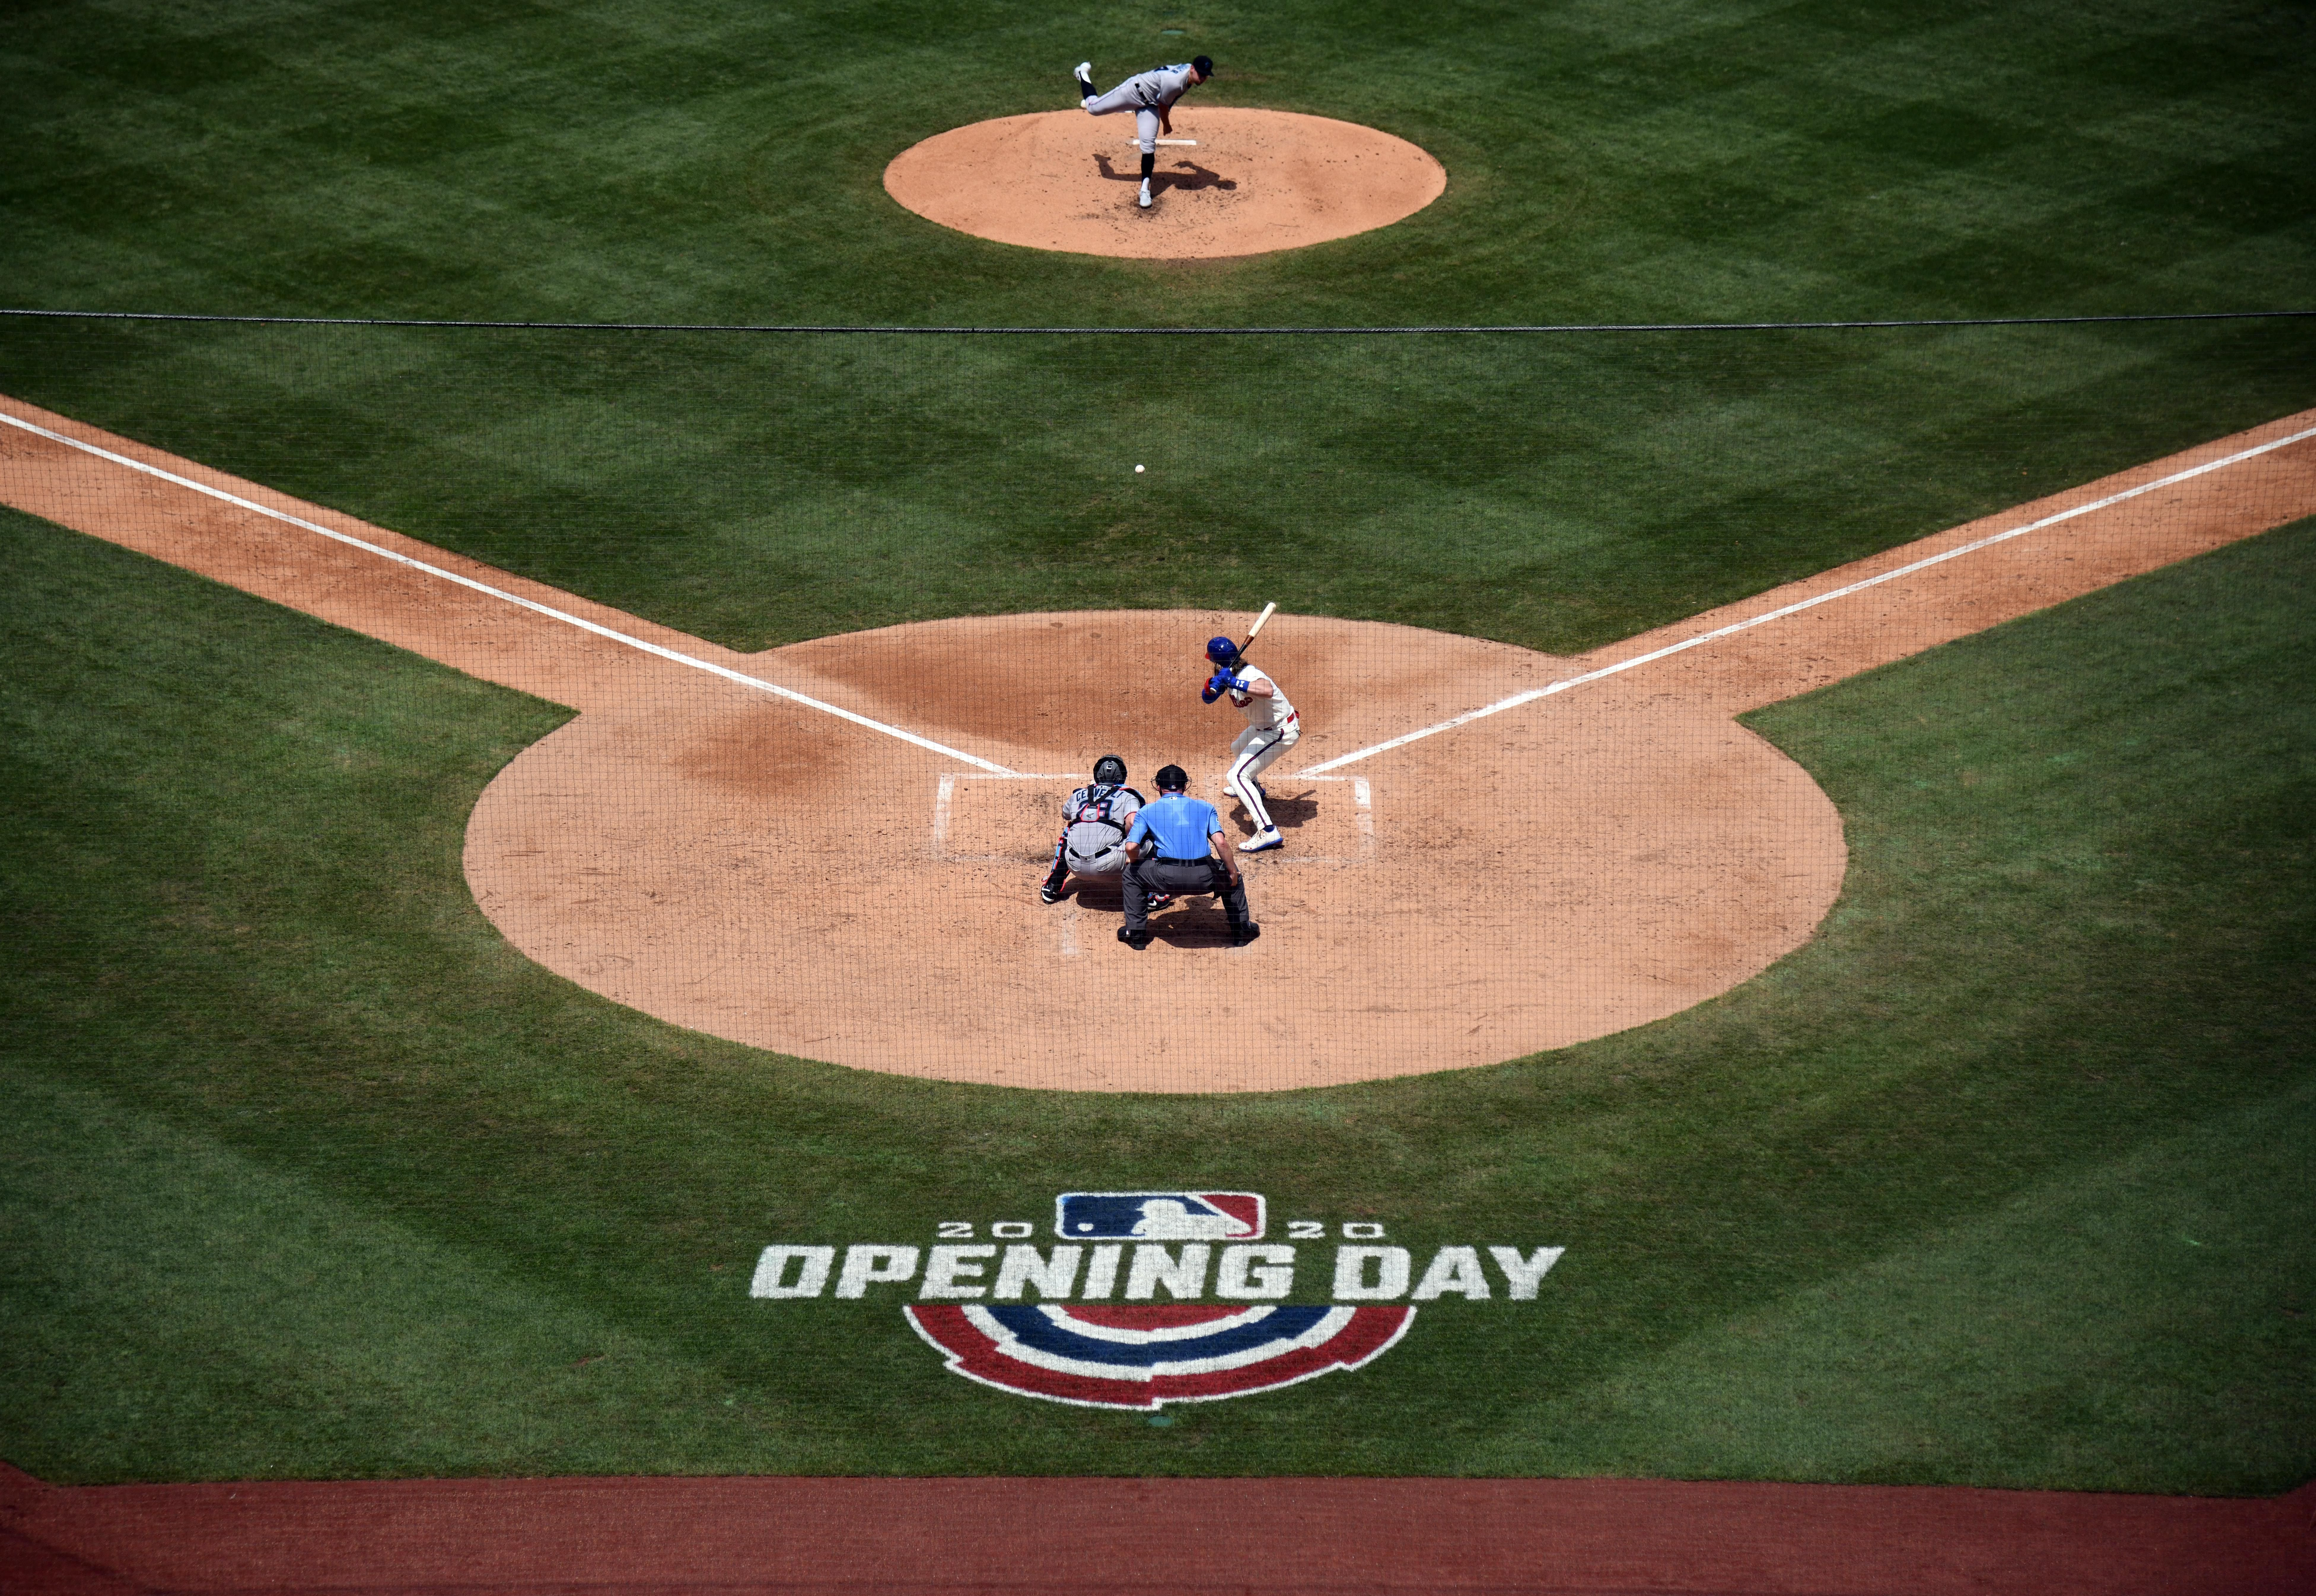 Mlb Commissioner Rob Manfred Warns Season Could Shut Down If Players Aren T More Careful In 2020 National Puppy Day National Doctors Day Usa Today Sports